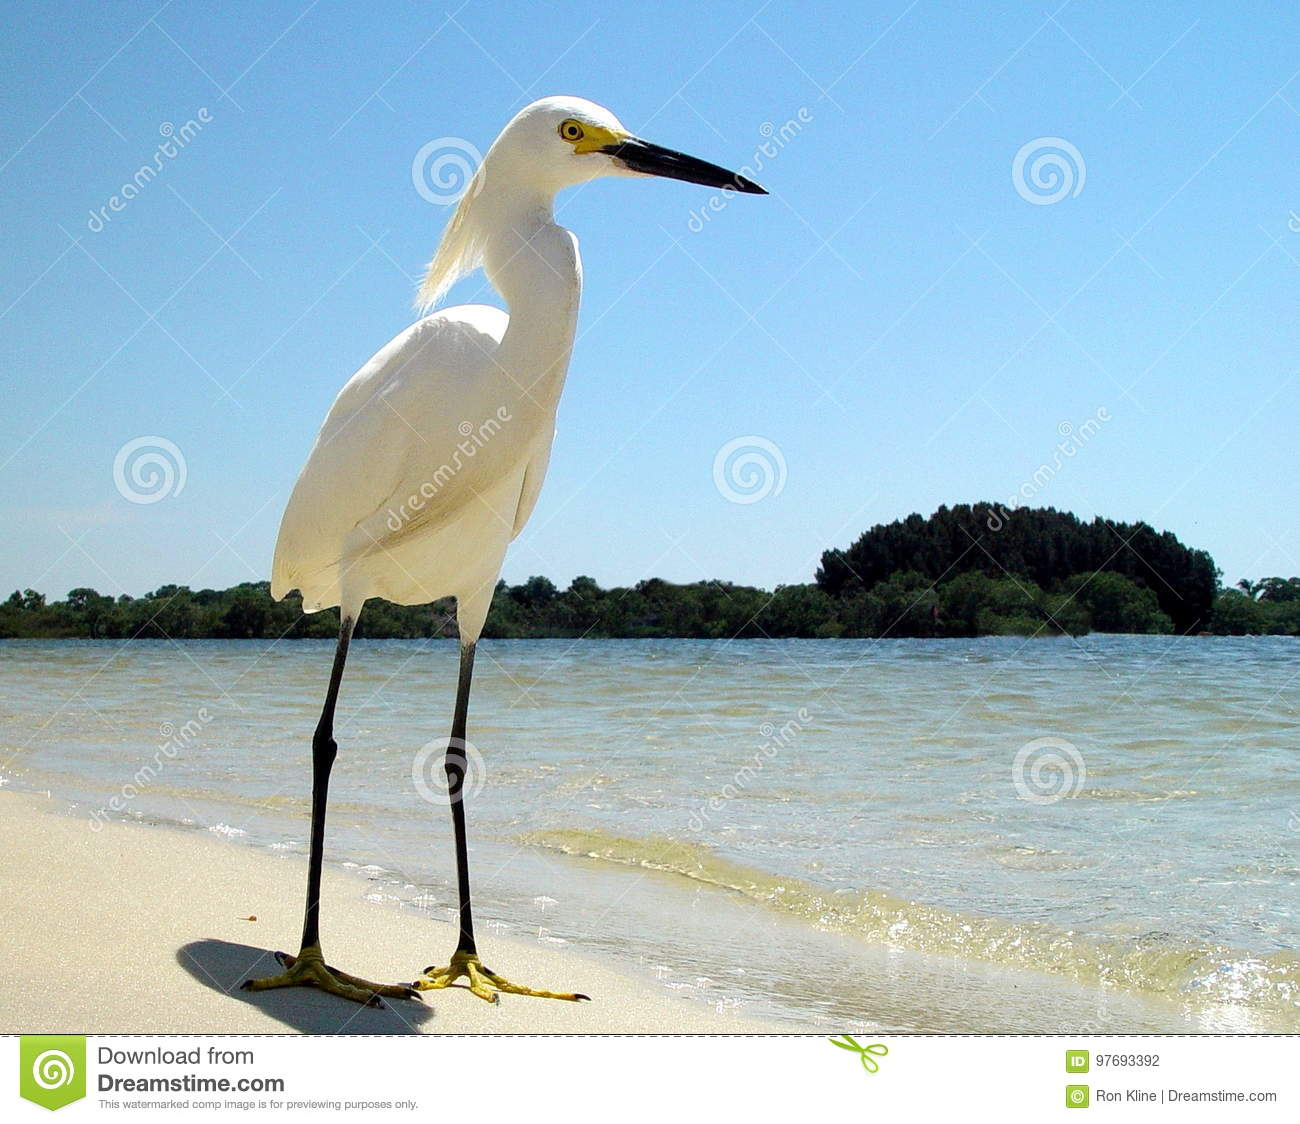 lone-white-heron-sandy-florida-beach-blu